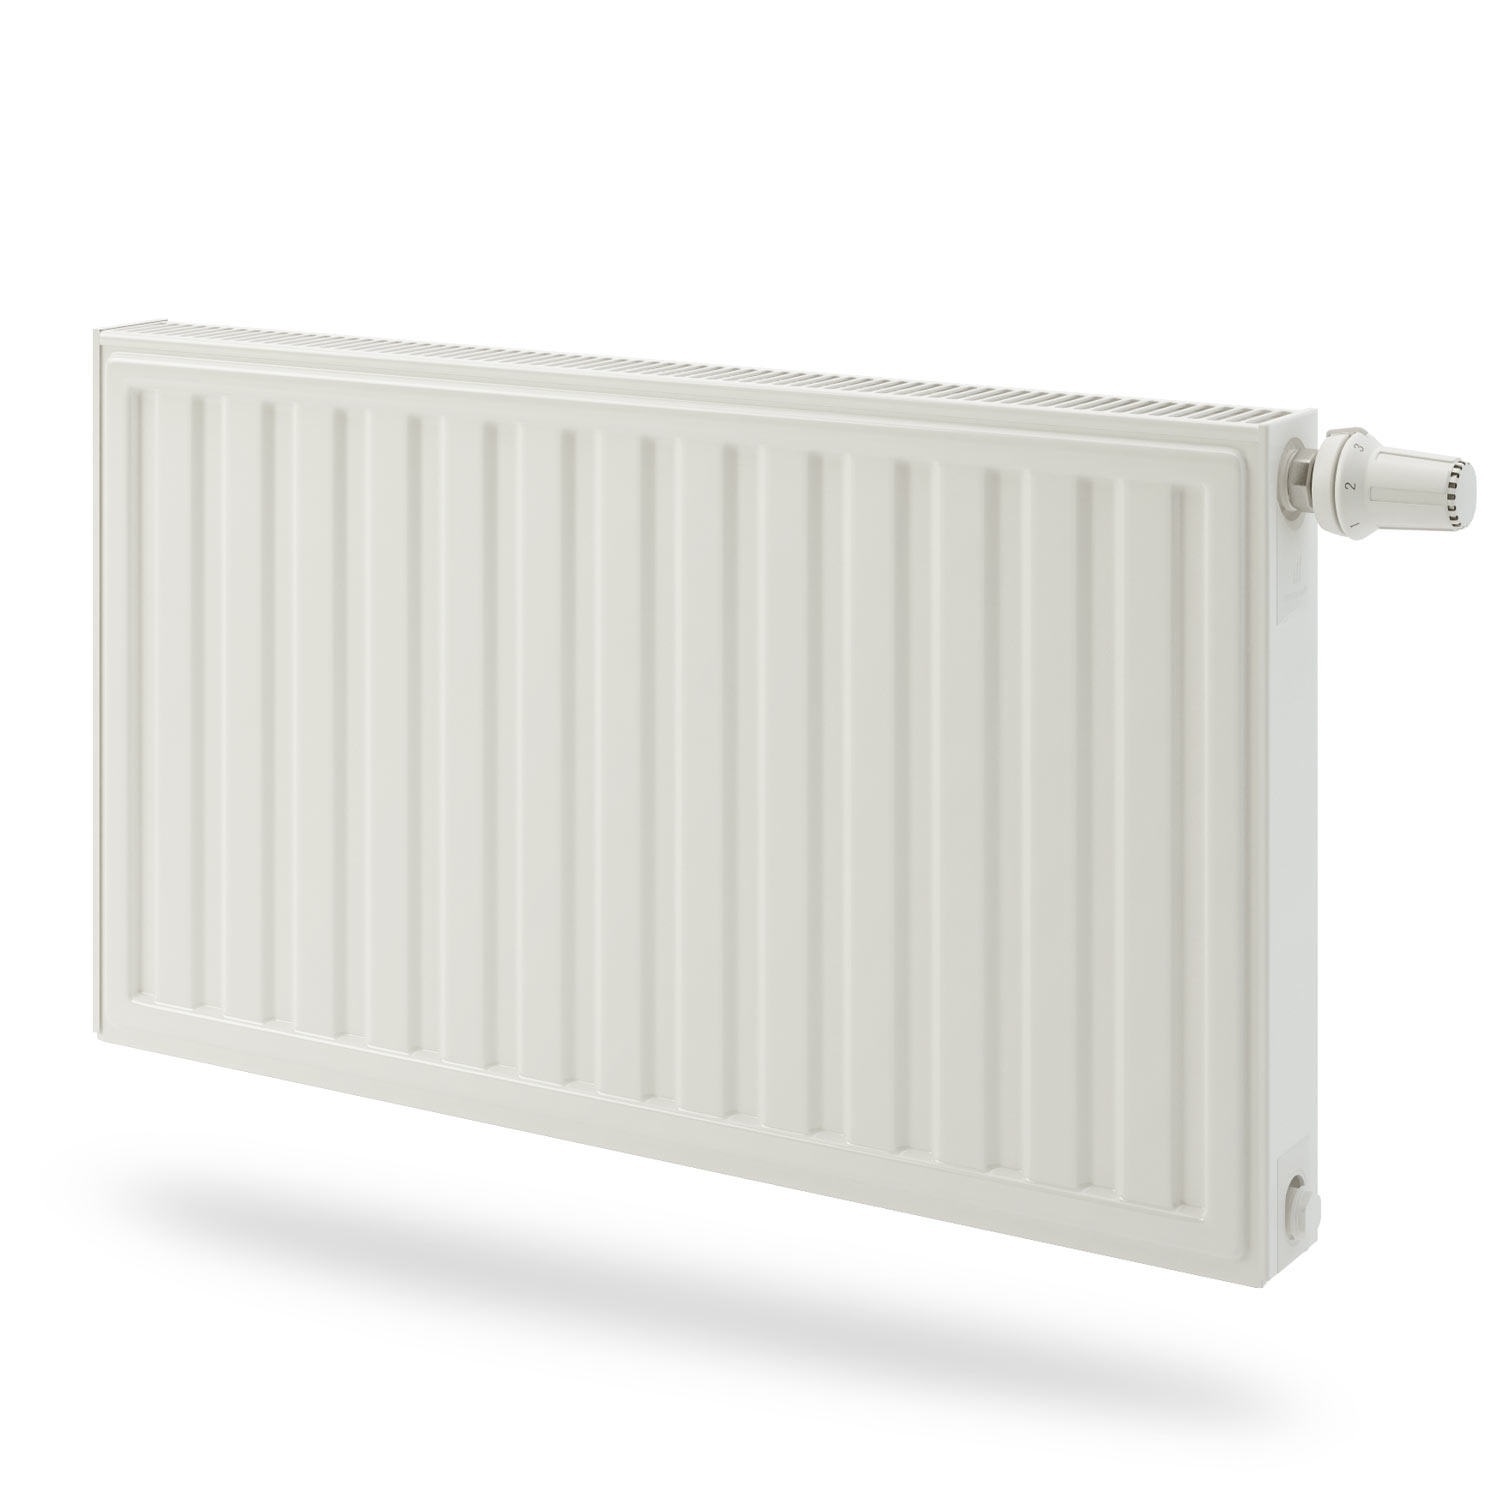 Radson E.Flow Integra paneelradiator  500x2100x69mm (H x L x D) - type 21s